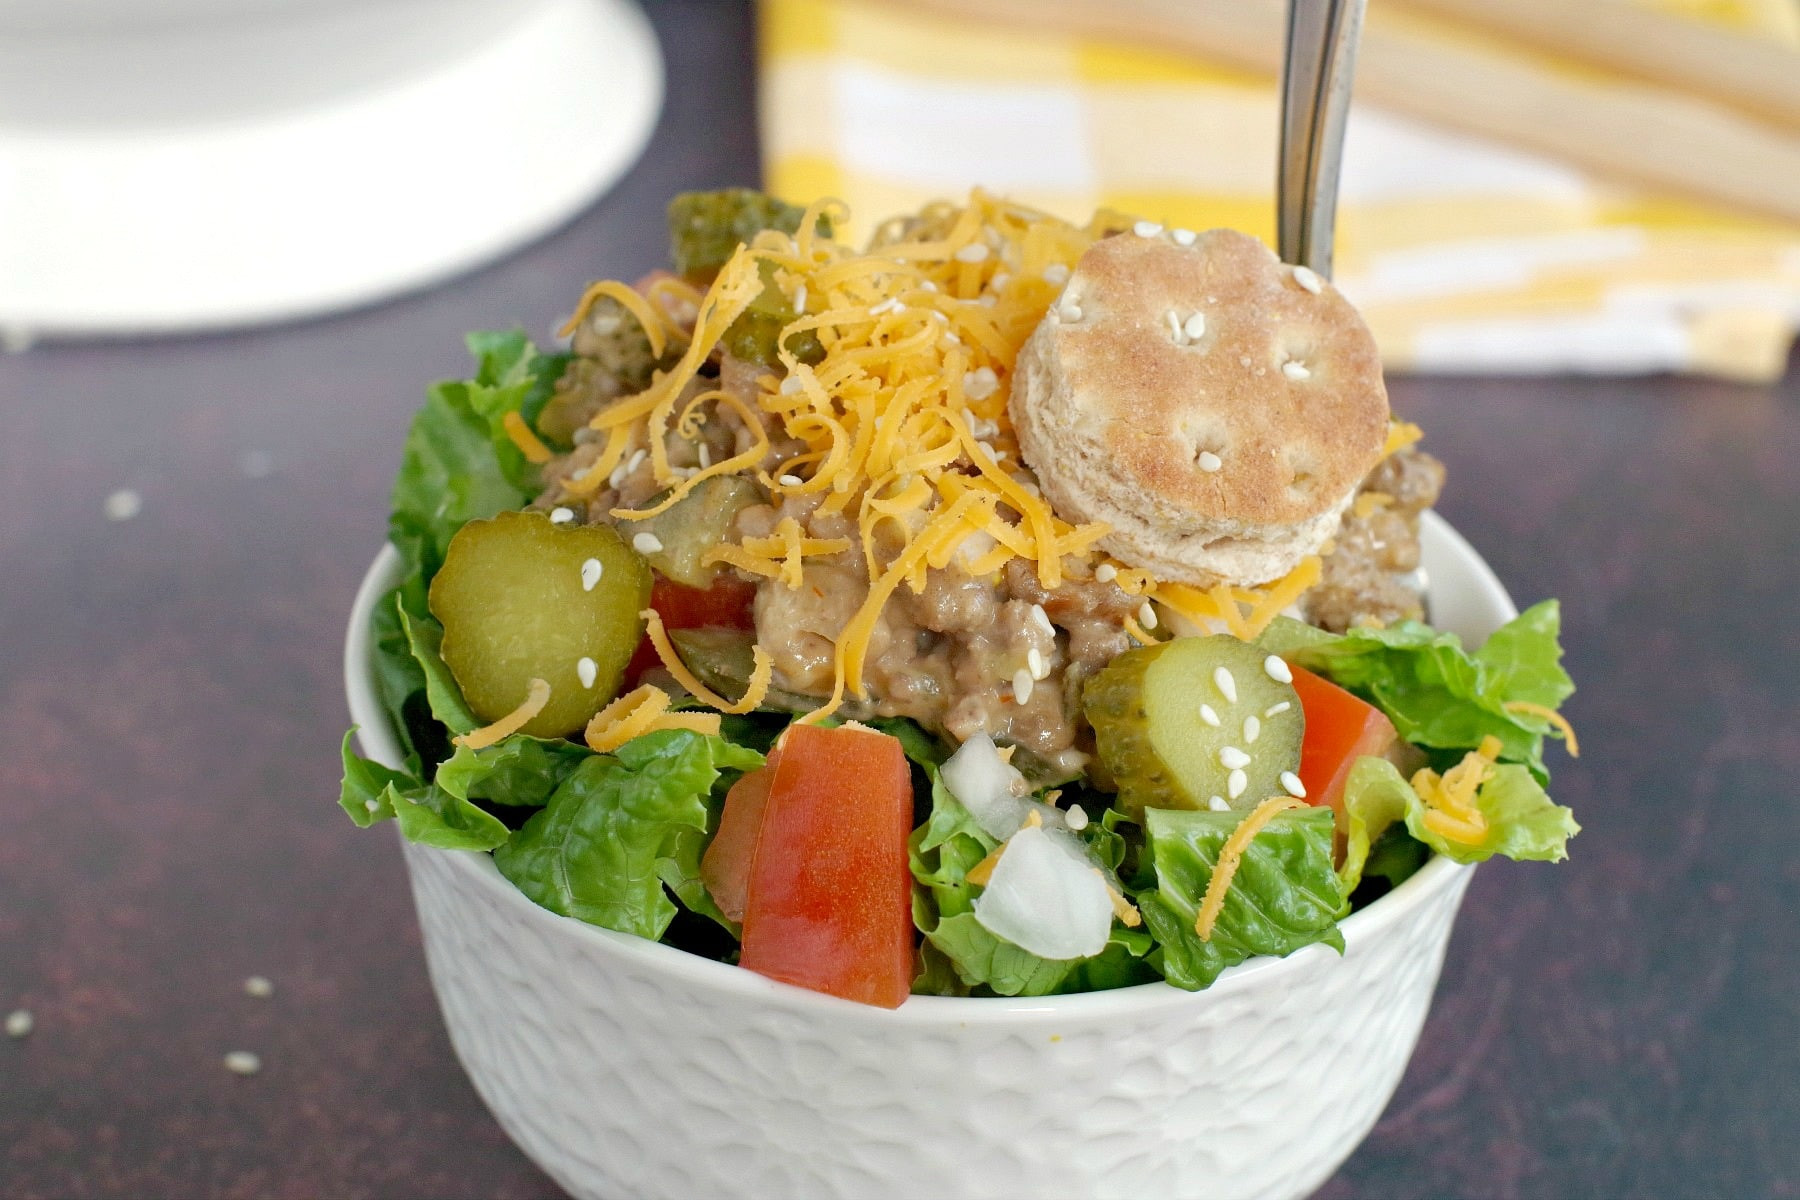 big mac salad in small white bowl, with yellow and white checkered tea towel in background